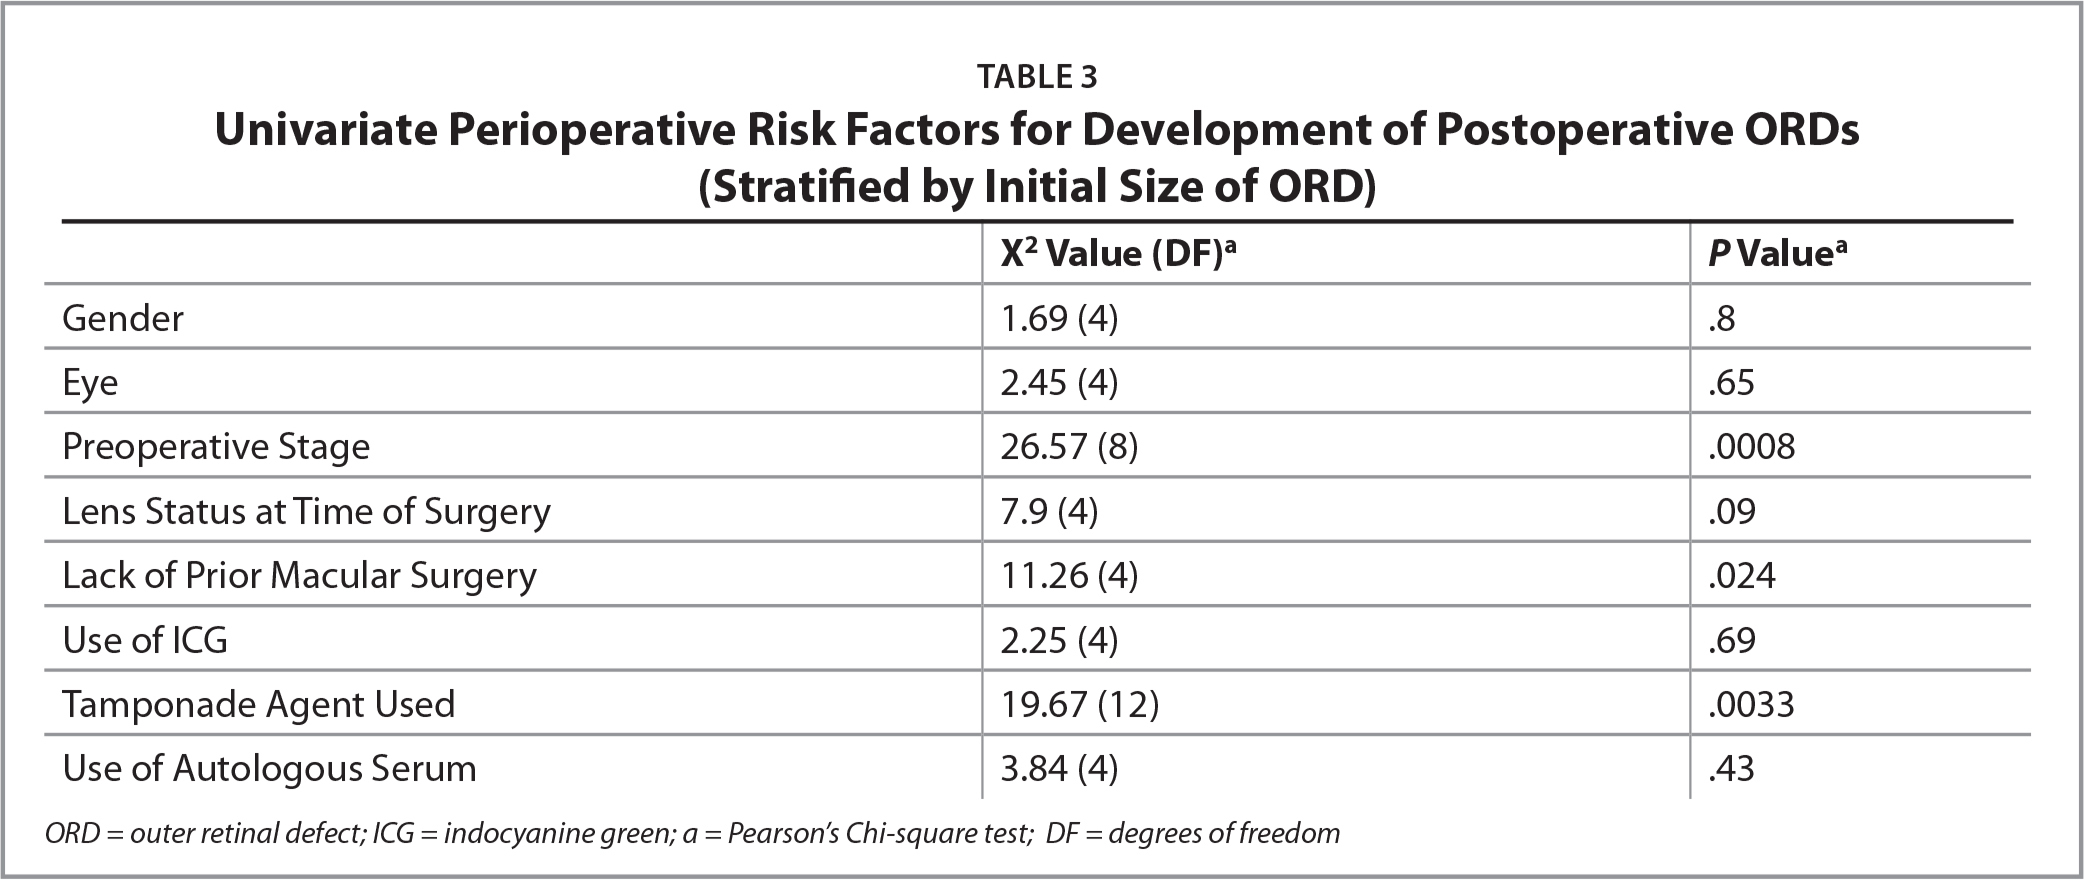 Univariate Perioperative Risk Factors for Development of Postoperative ORDs (Stratified by Initial Size of ORD)